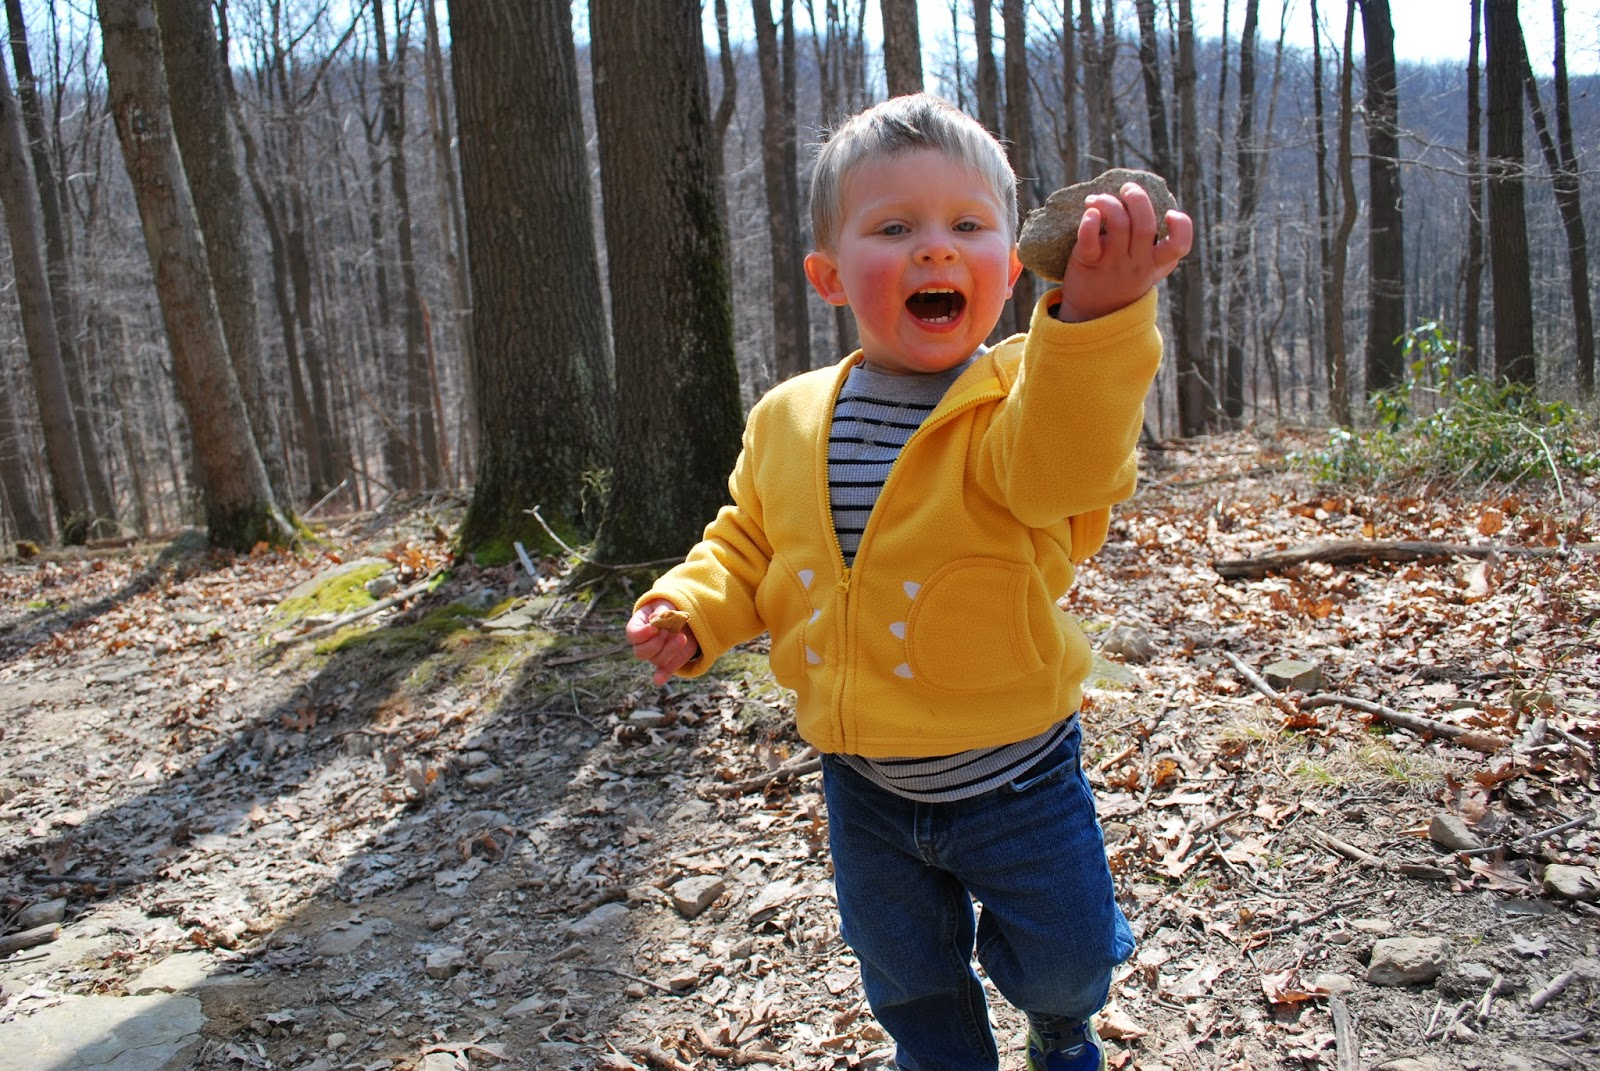 Toddler picking up rocks while hiking at Coopers Rock State Forest